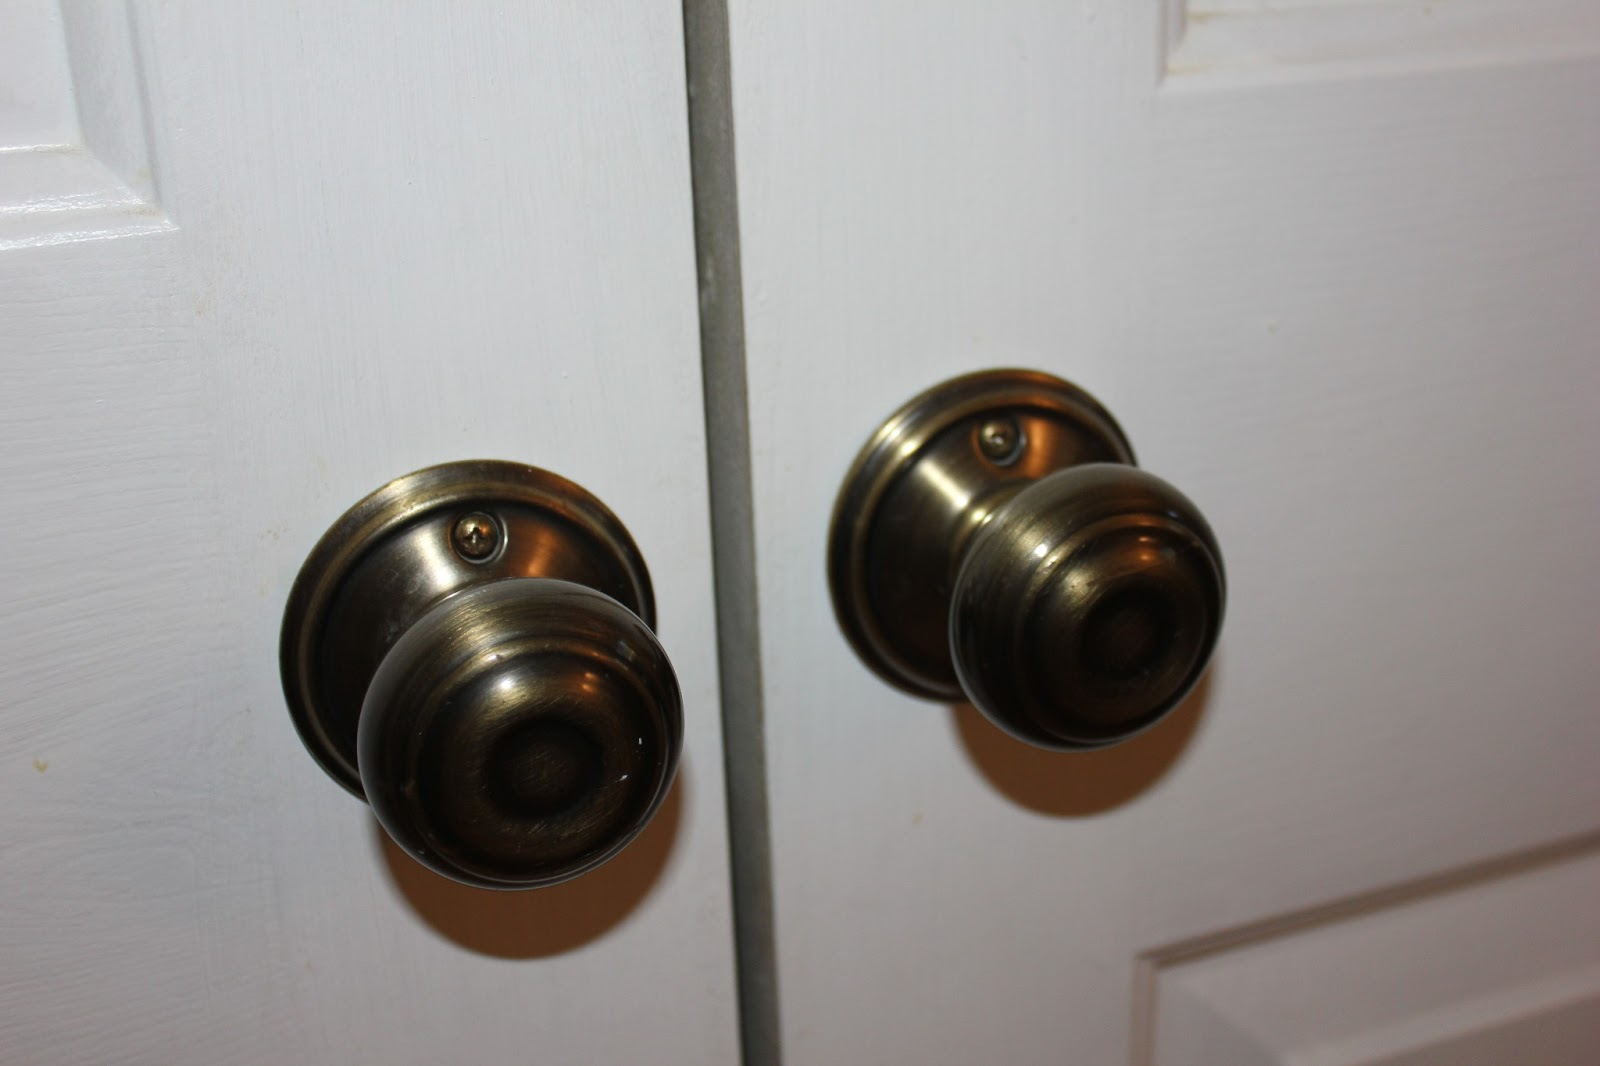 closet door knobs photo - 11